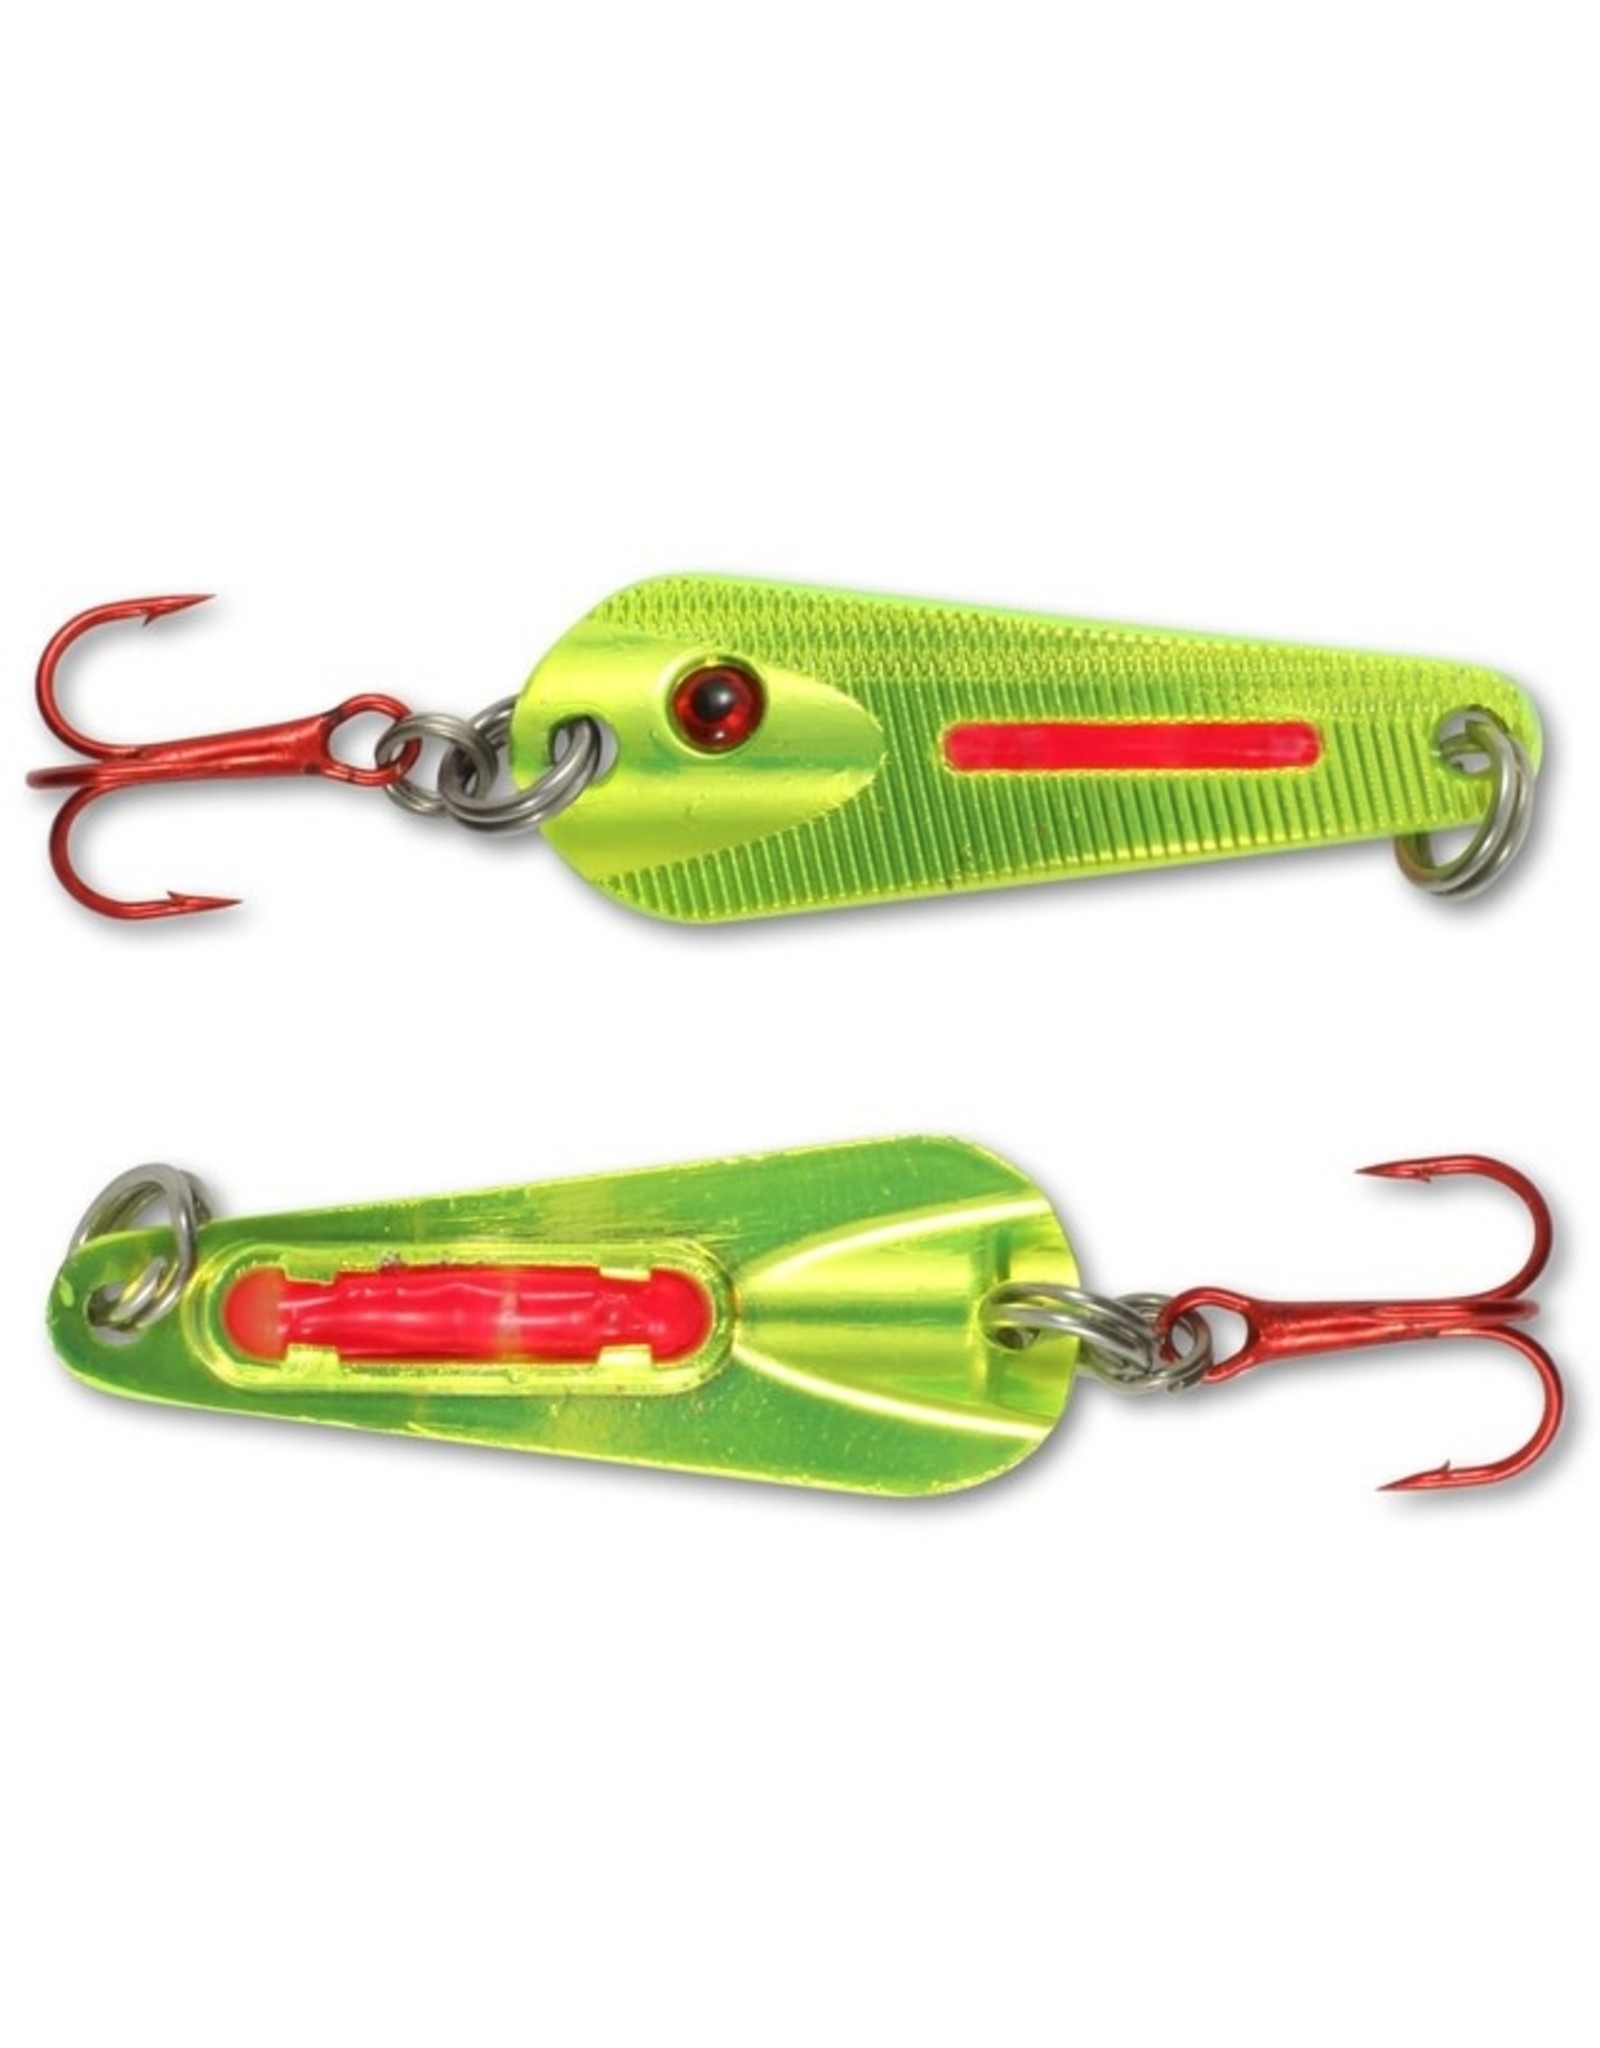 Northland Northland Glo-Shot Spoon Lure - P-23307